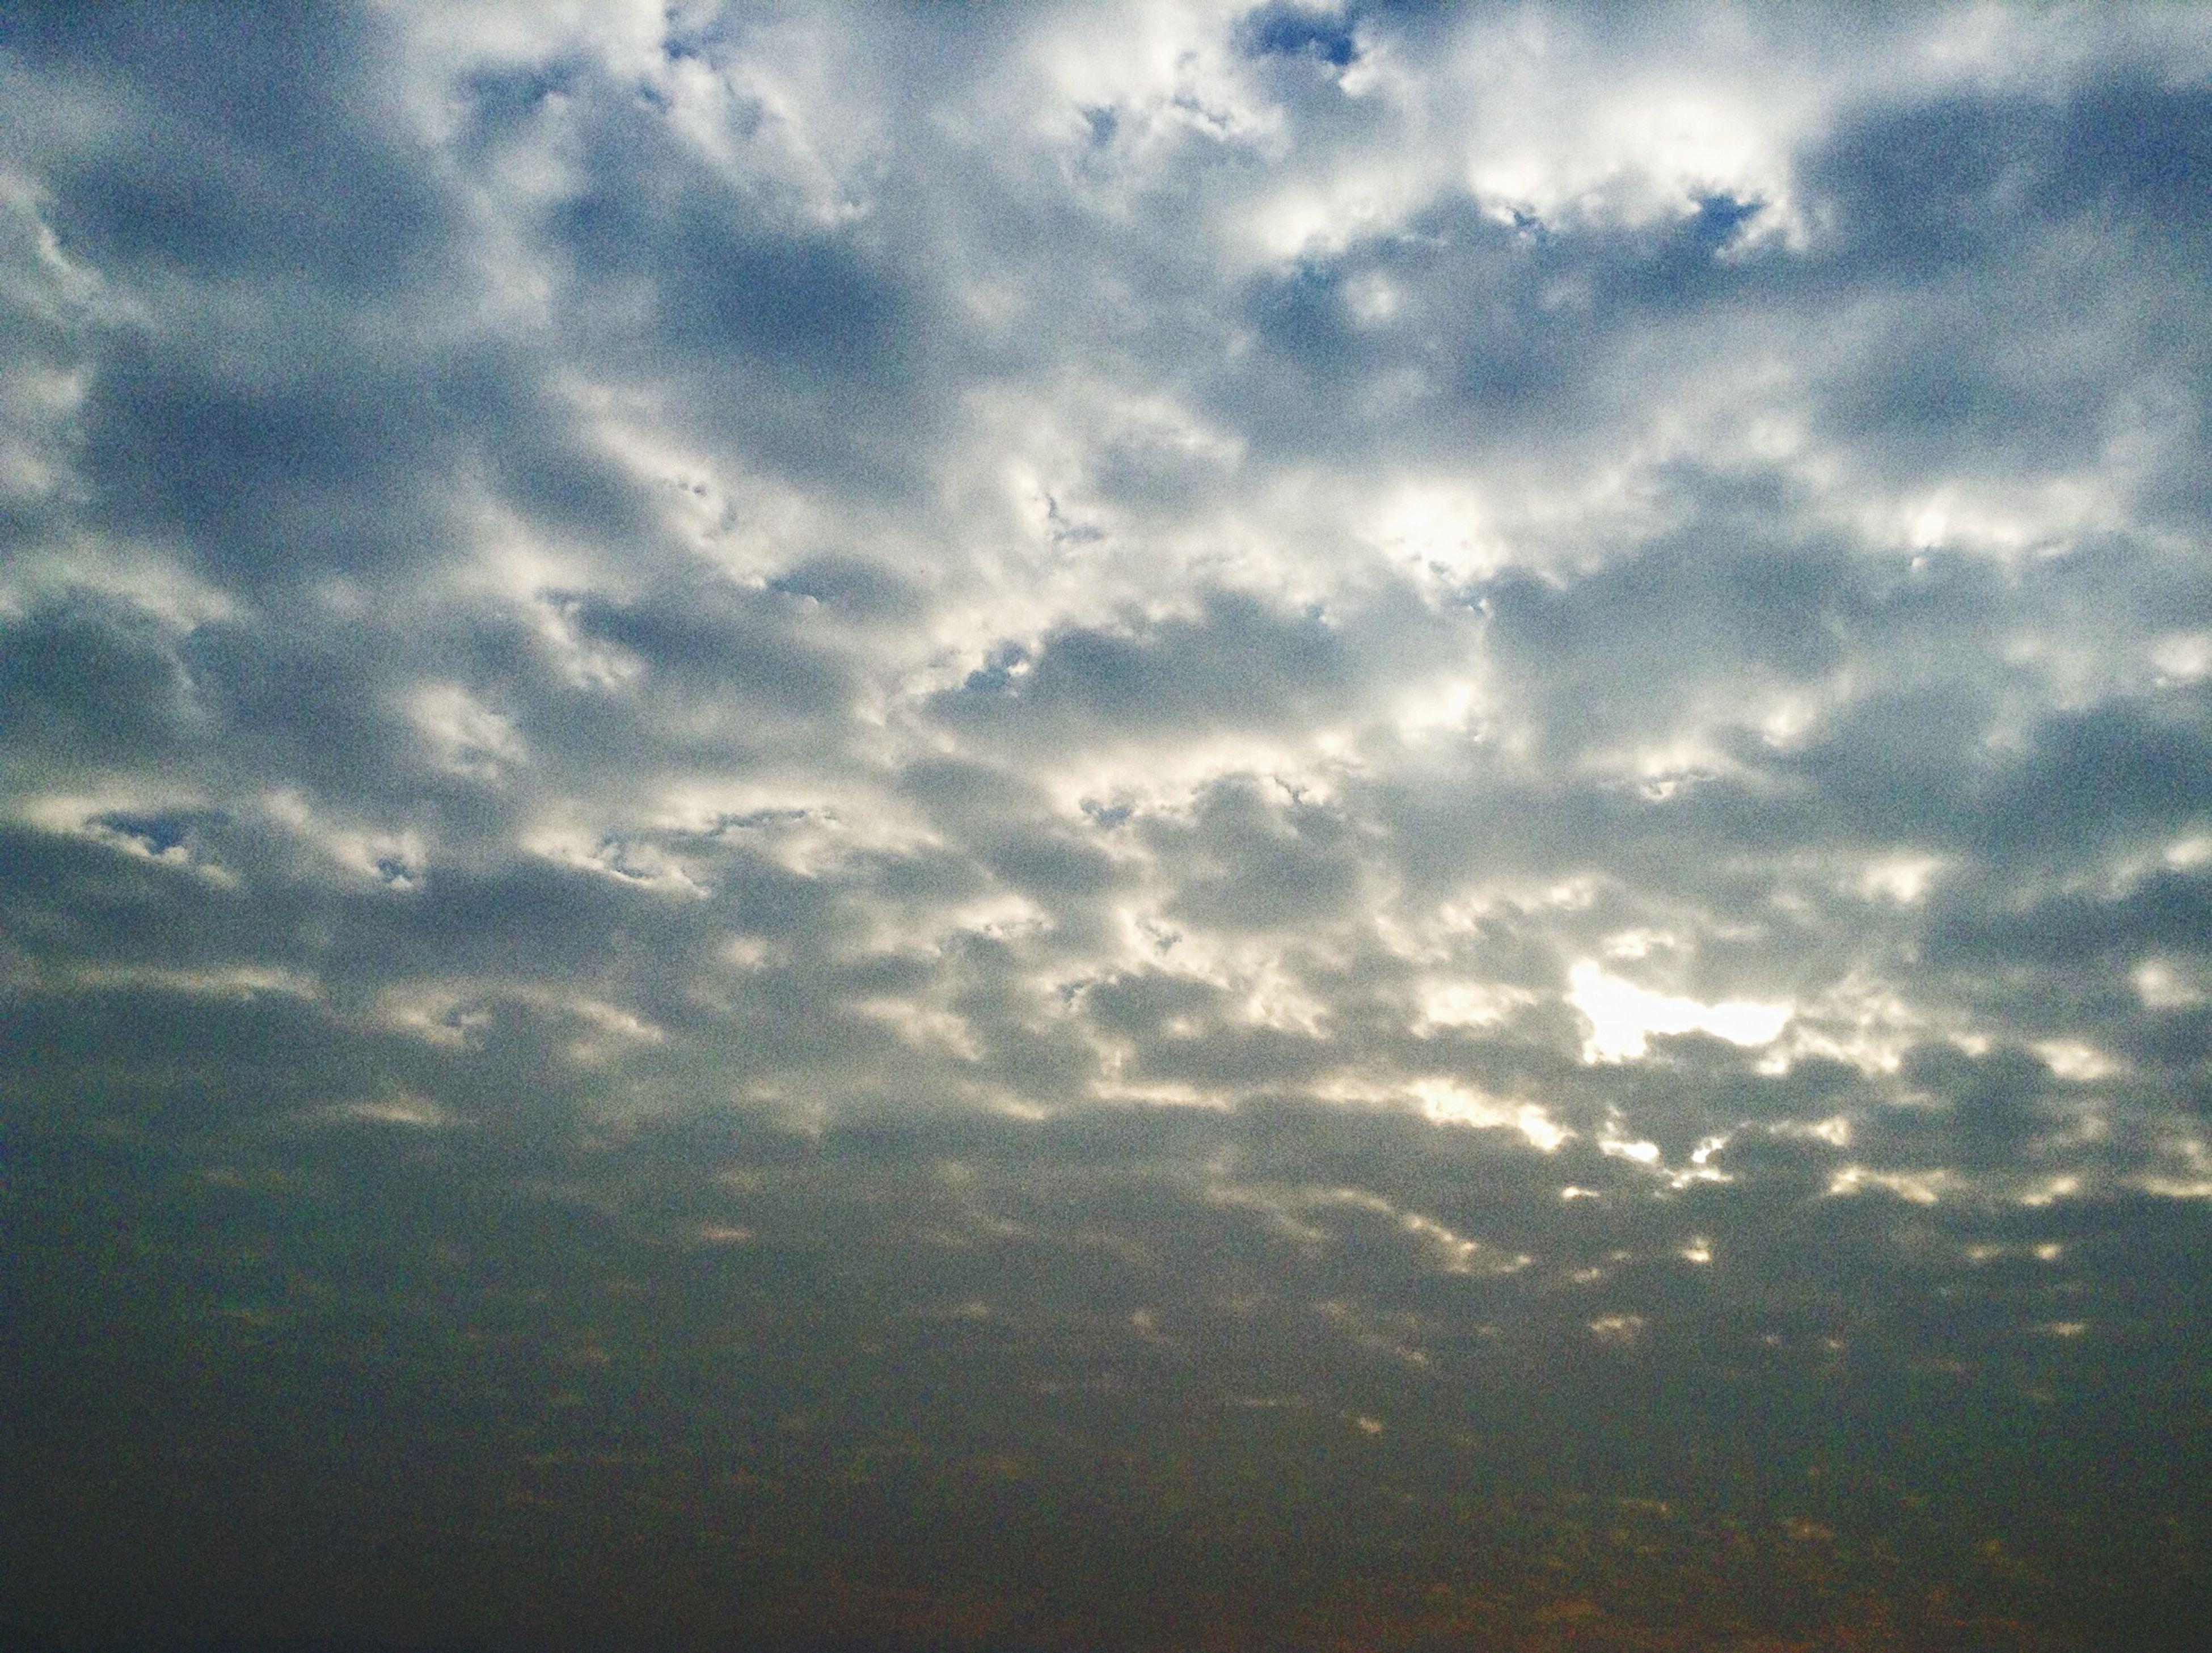 sky, cloud - sky, beauty in nature, scenics, tranquility, cloudy, tranquil scene, cloudscape, nature, sky only, backgrounds, cloud, weather, idyllic, full frame, majestic, no people, low angle view, overcast, outdoors